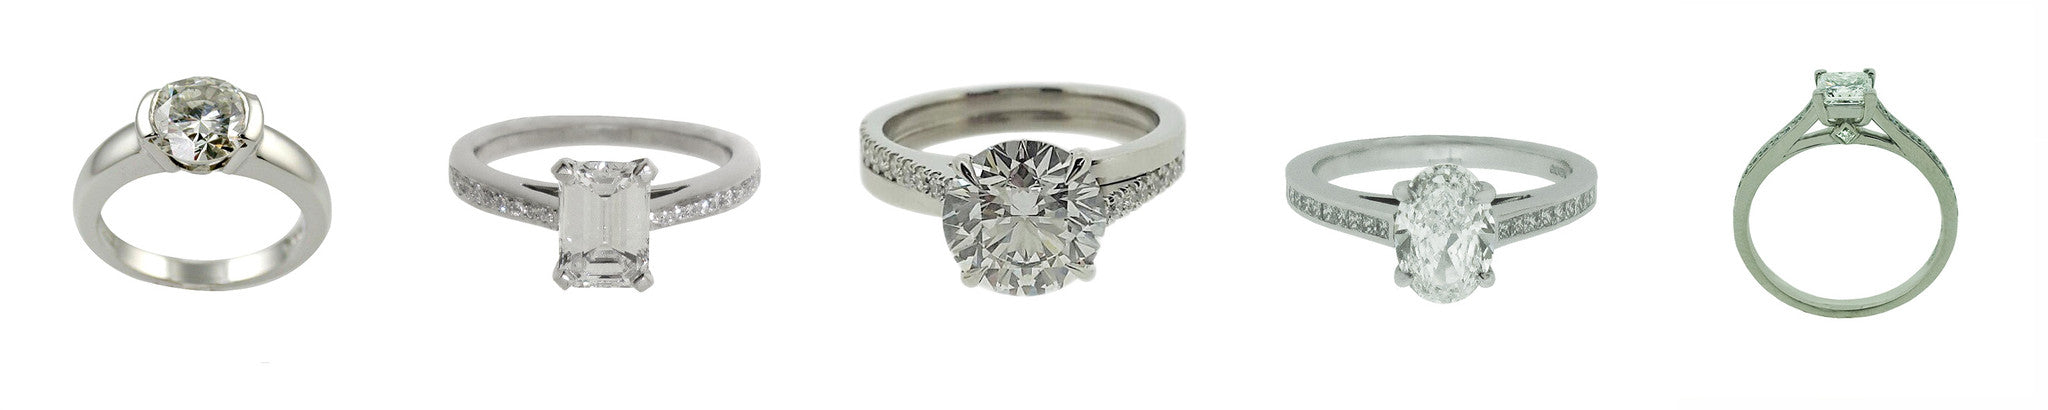 Diamond solitaire fine engagement rings, bespoke image gallery